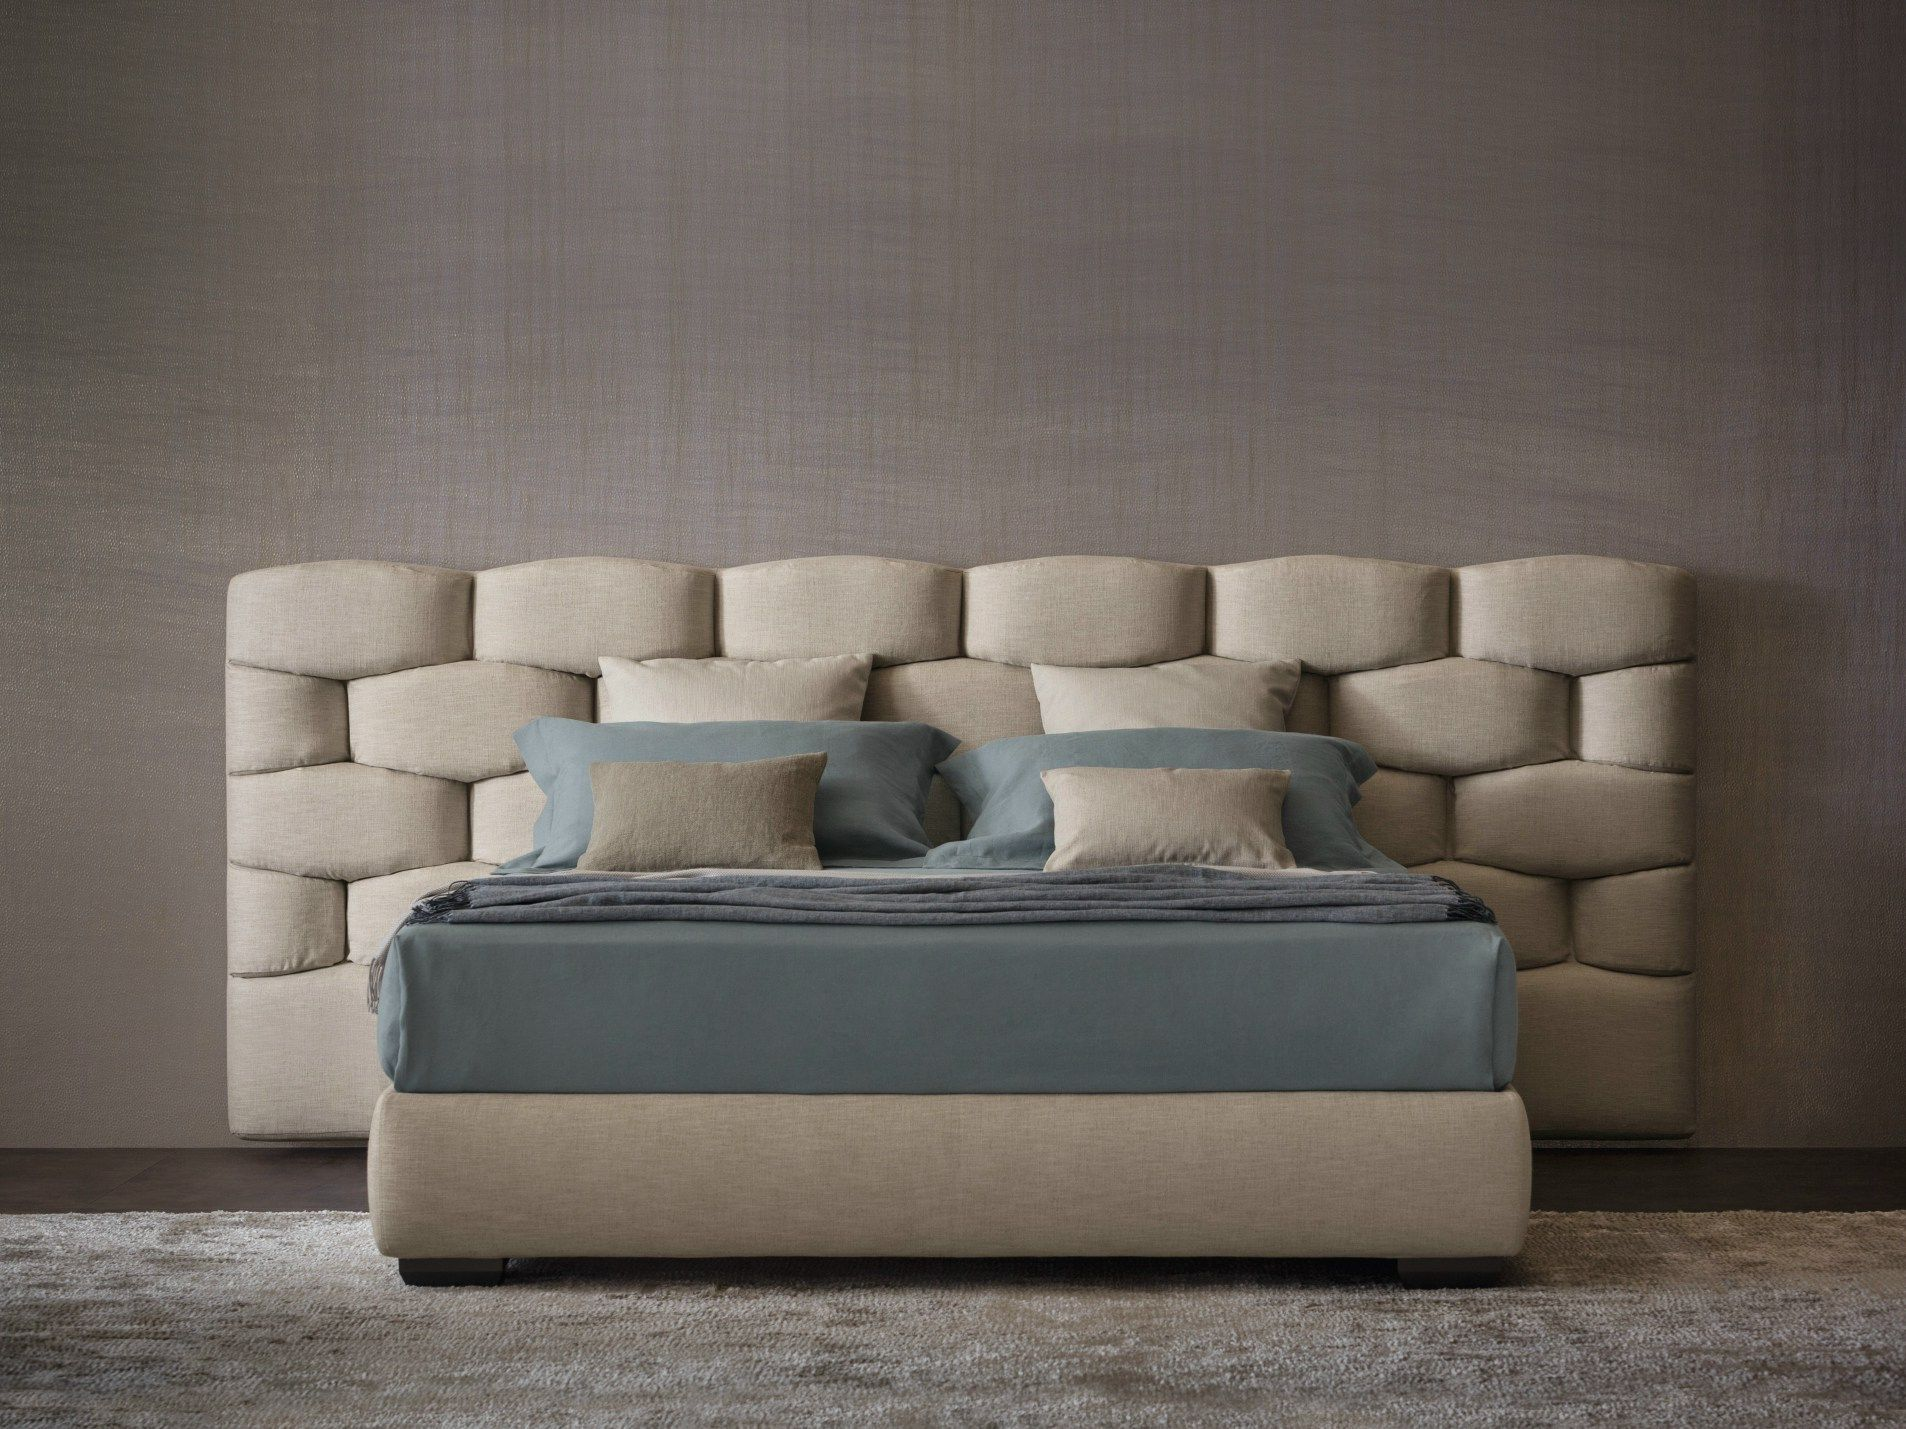 MAJAL | Bed with upholstered headboard by Flou | design Carlo ...